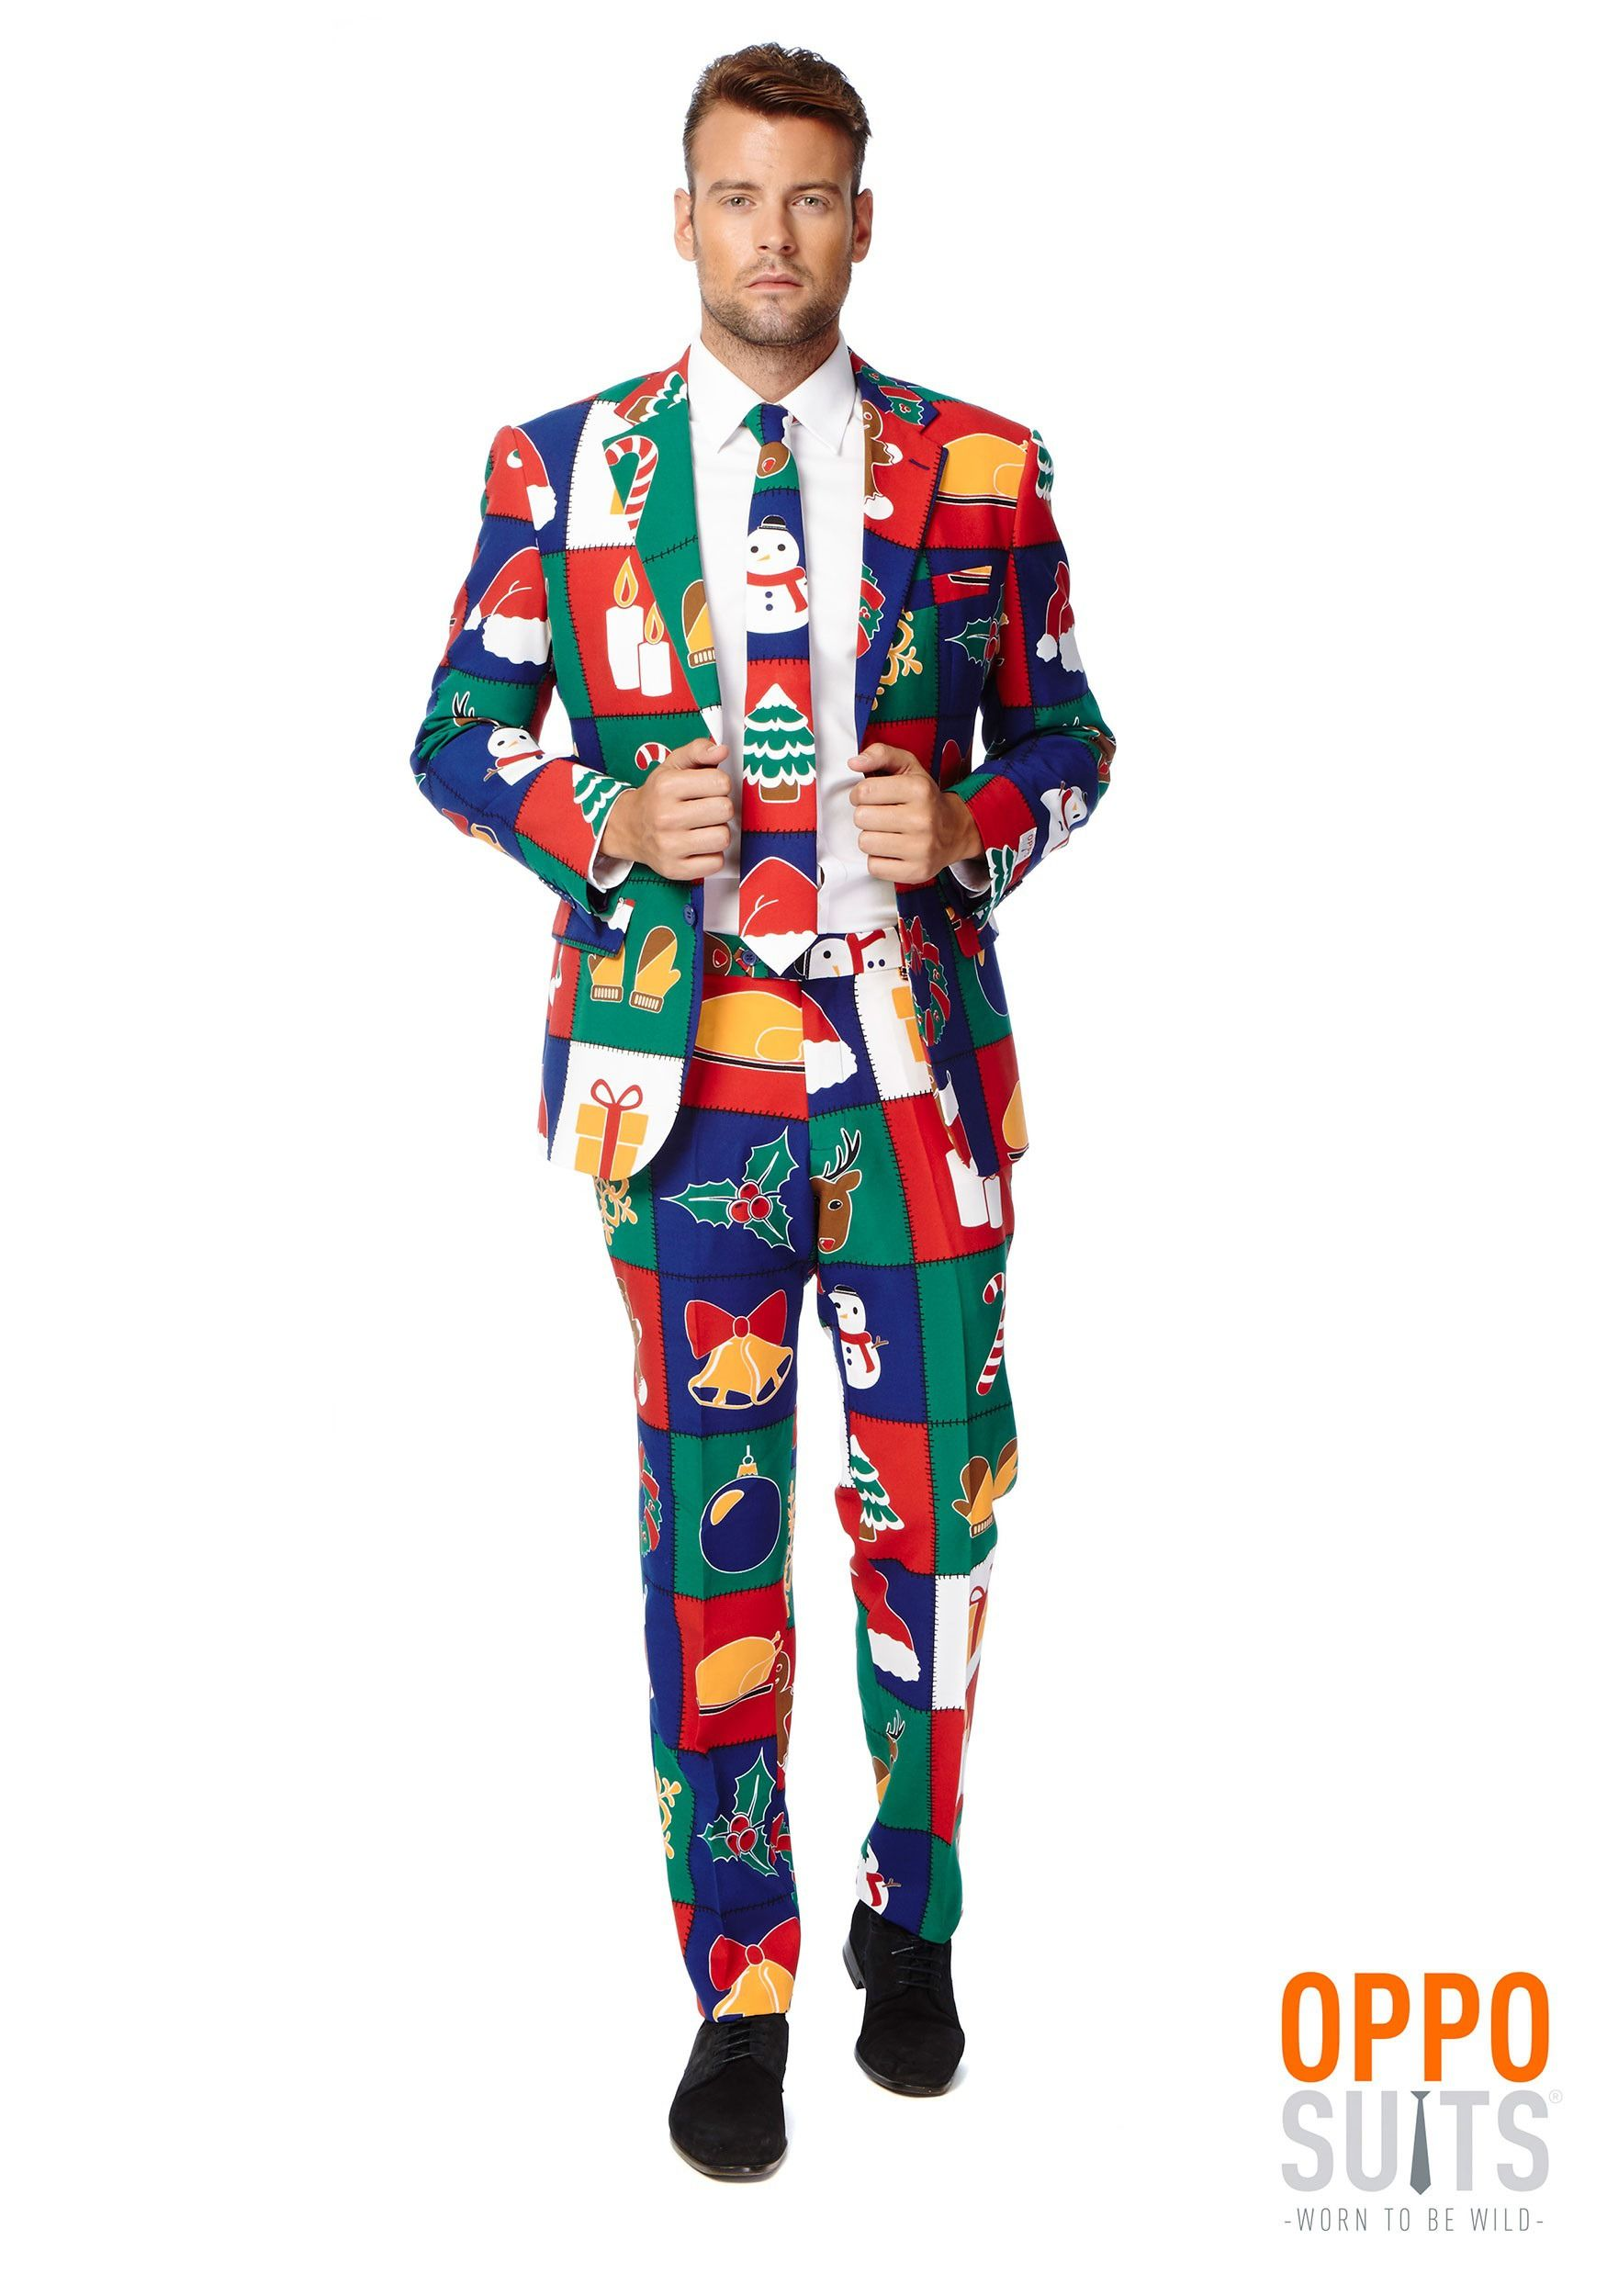 b1133995ad0f Wear this Men s Quilty Pleasure Holiday Opposuit to a party or to ...